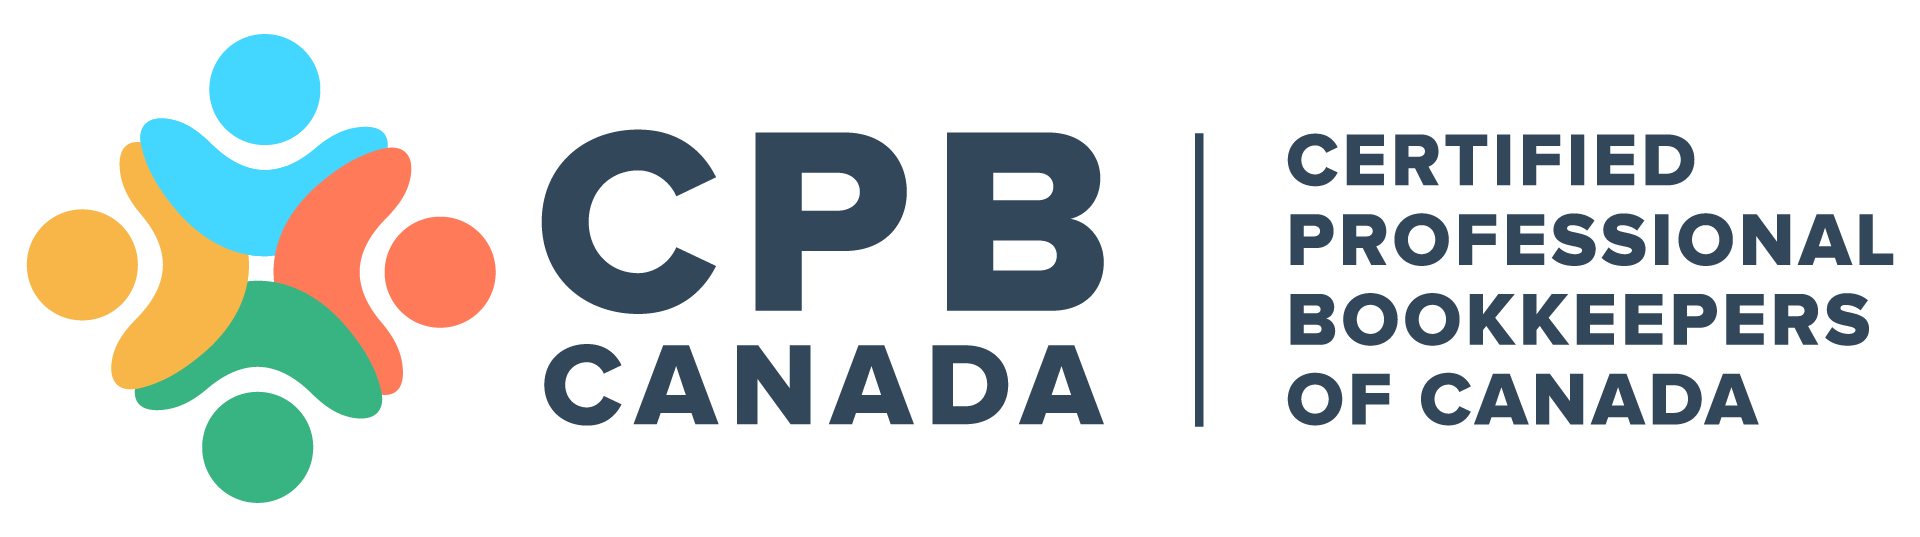 Certified Professional Bookkeepers of Canada (CPB Canada)